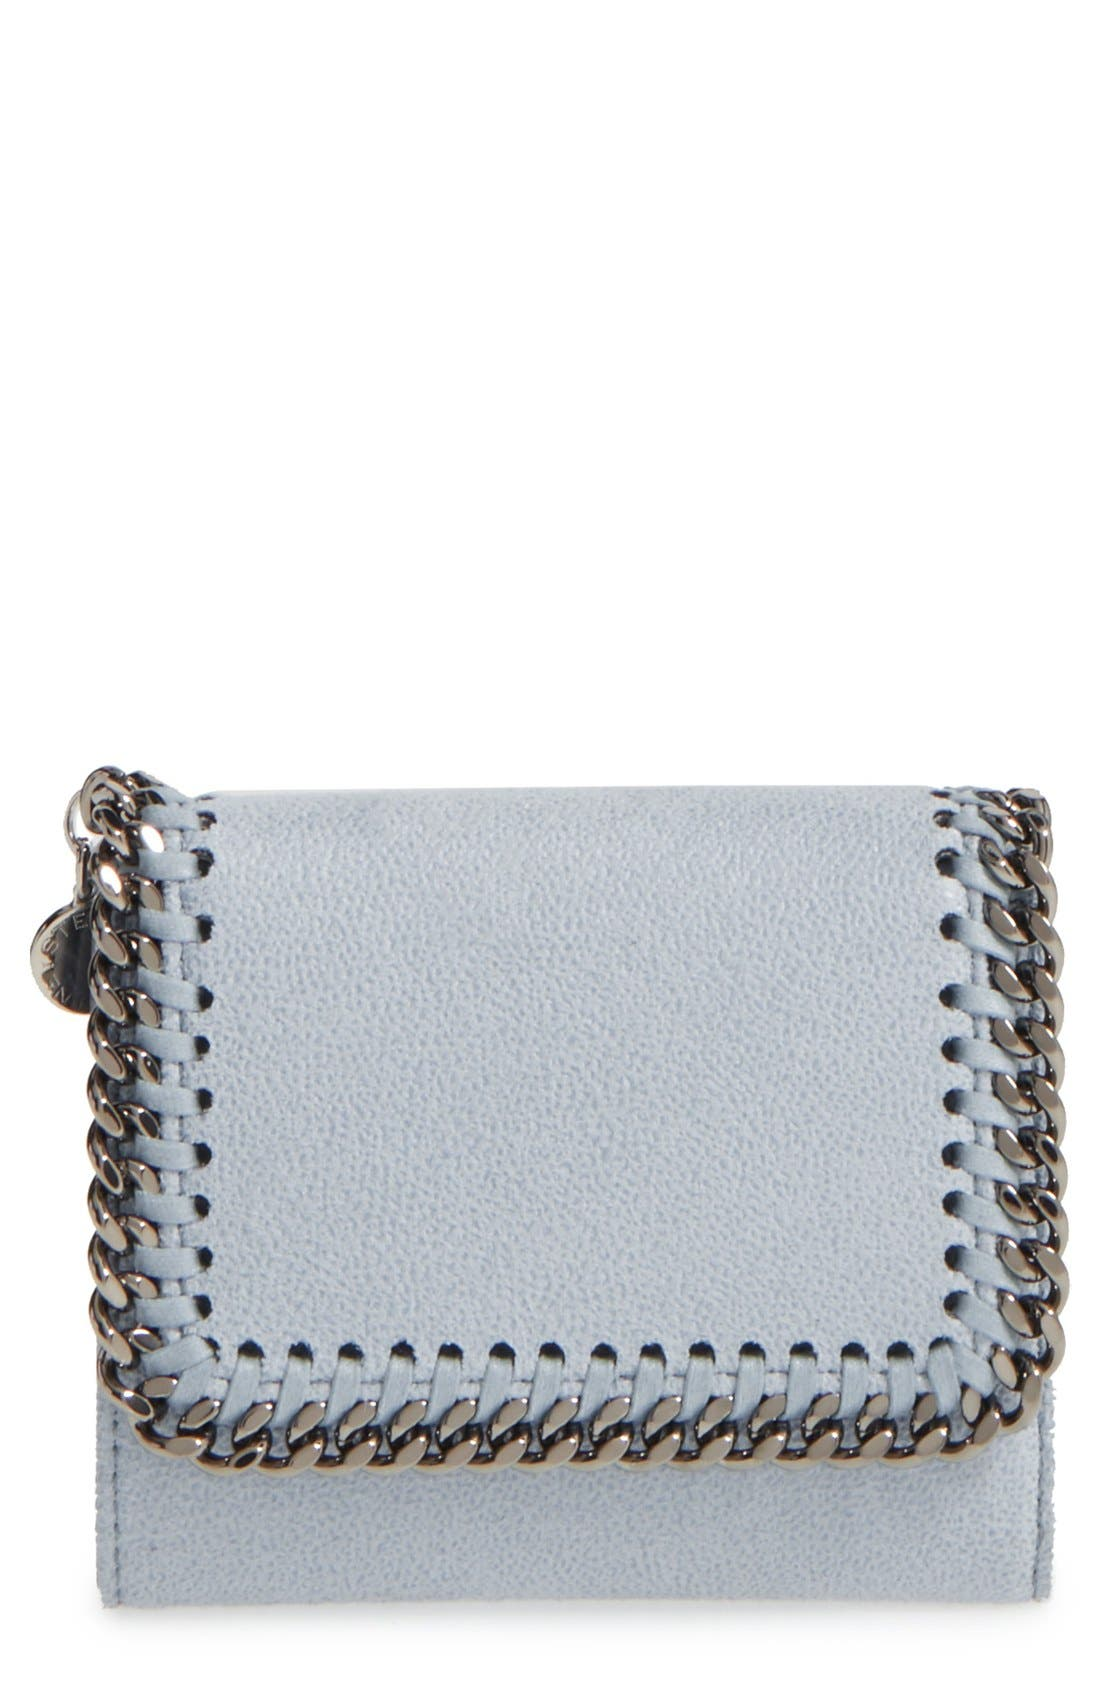 Main Image - Stella McCartney 'Small Falabella' Faux Leather French Wallet